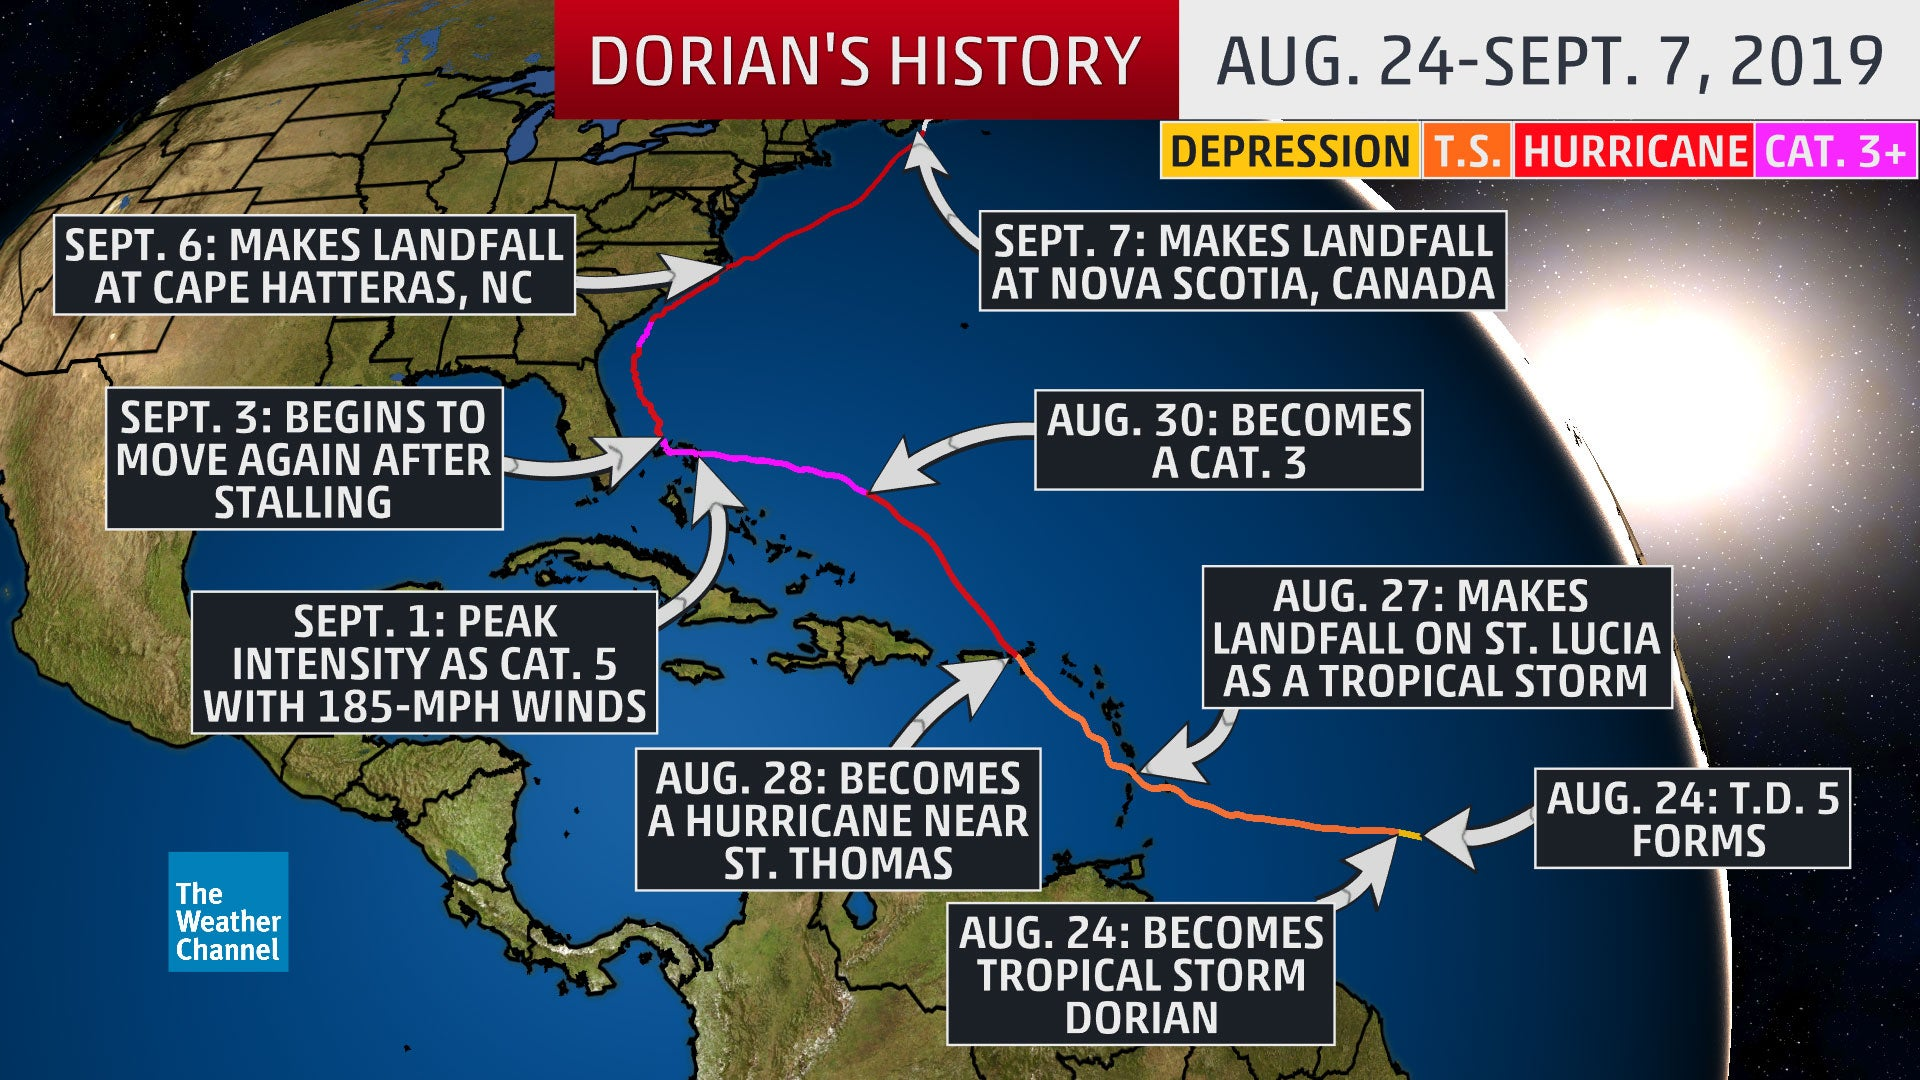 Hurricane Dorian Ravaged The Bahamas And Struck The Southeastern U S Coast Before Heading To Atlantic Canada Recap The Weather Channel